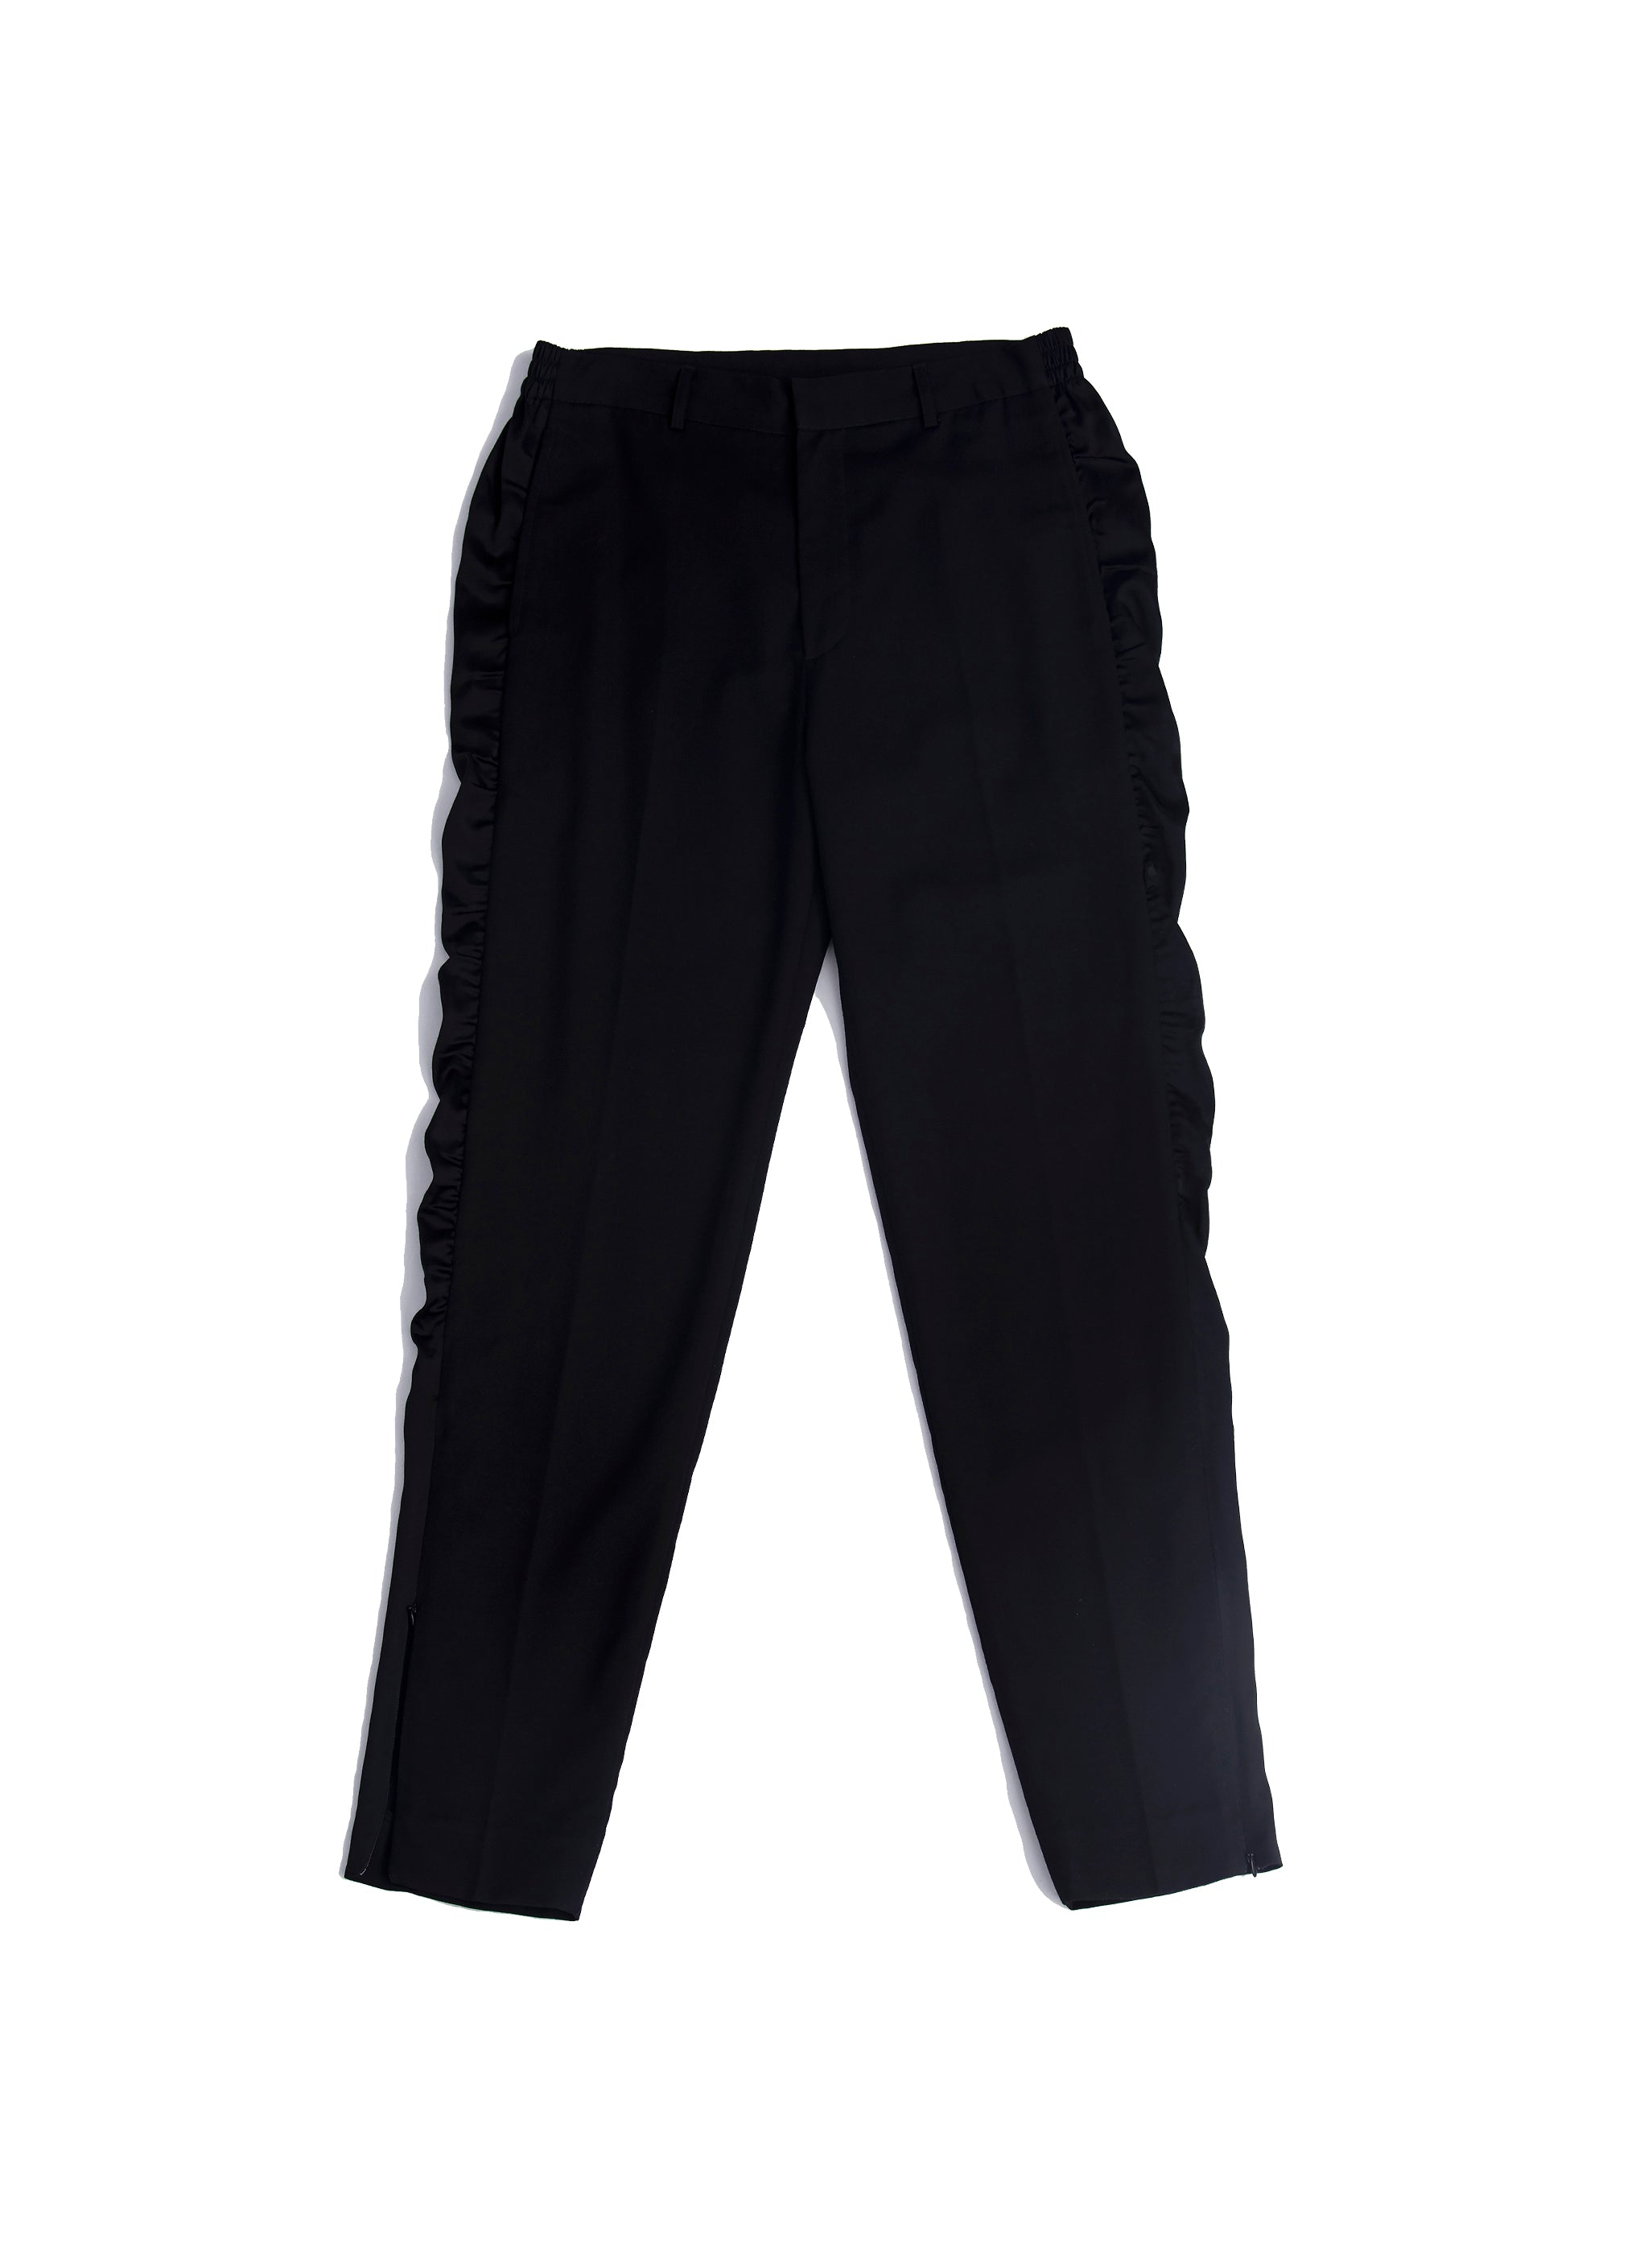 Athlete trousers